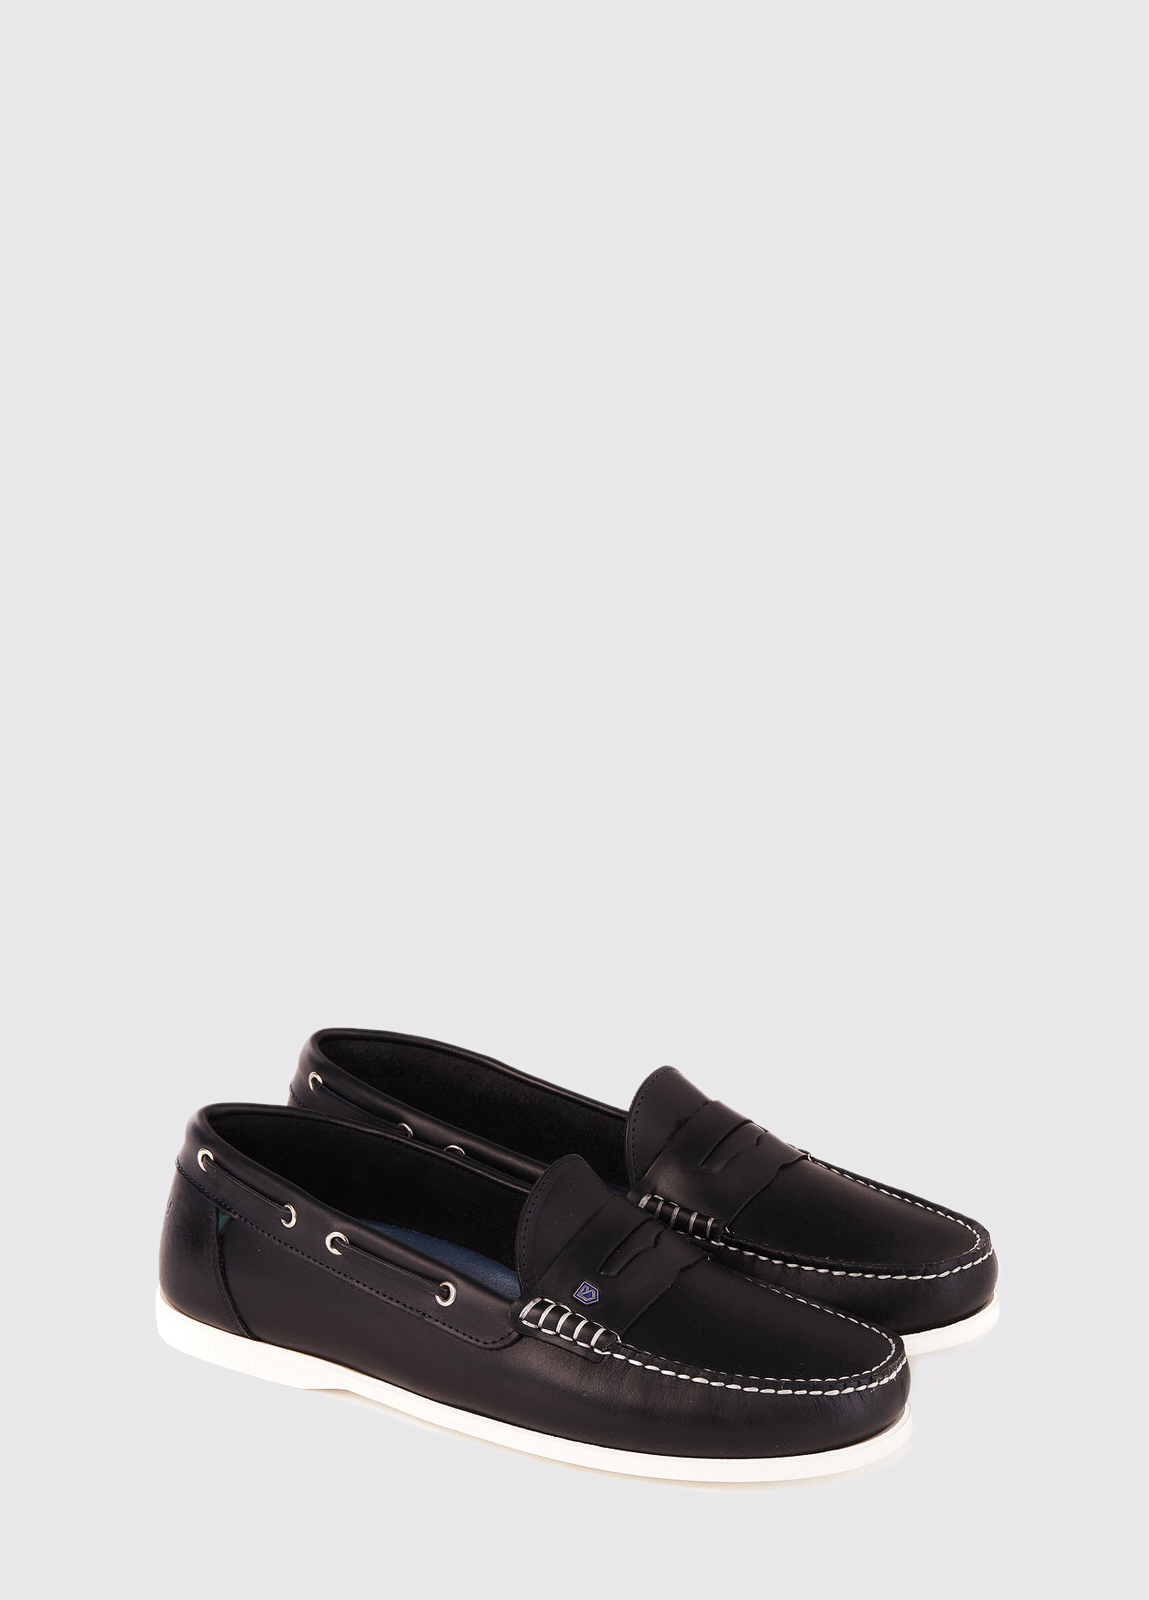 Spinnaker Moccasin - Navy